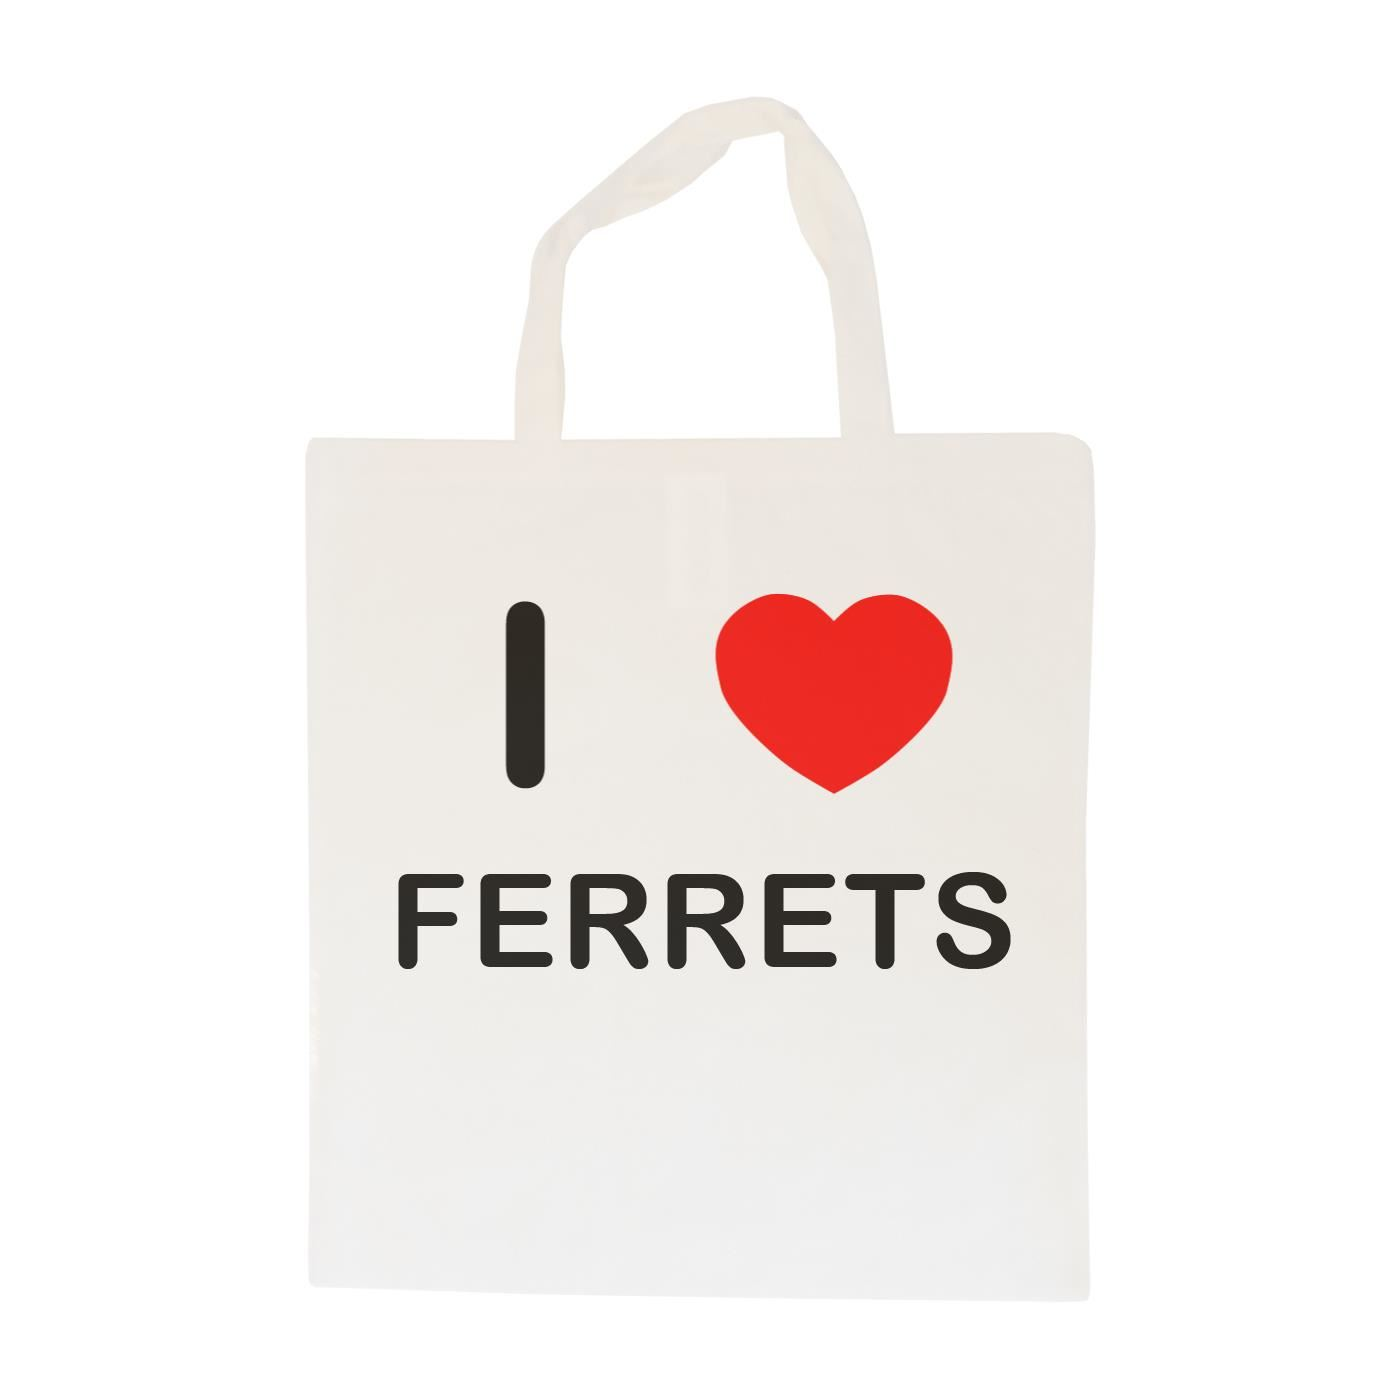 I Love Ferrets - Cotton Bag | Size choice Tote, Shopper or Sling